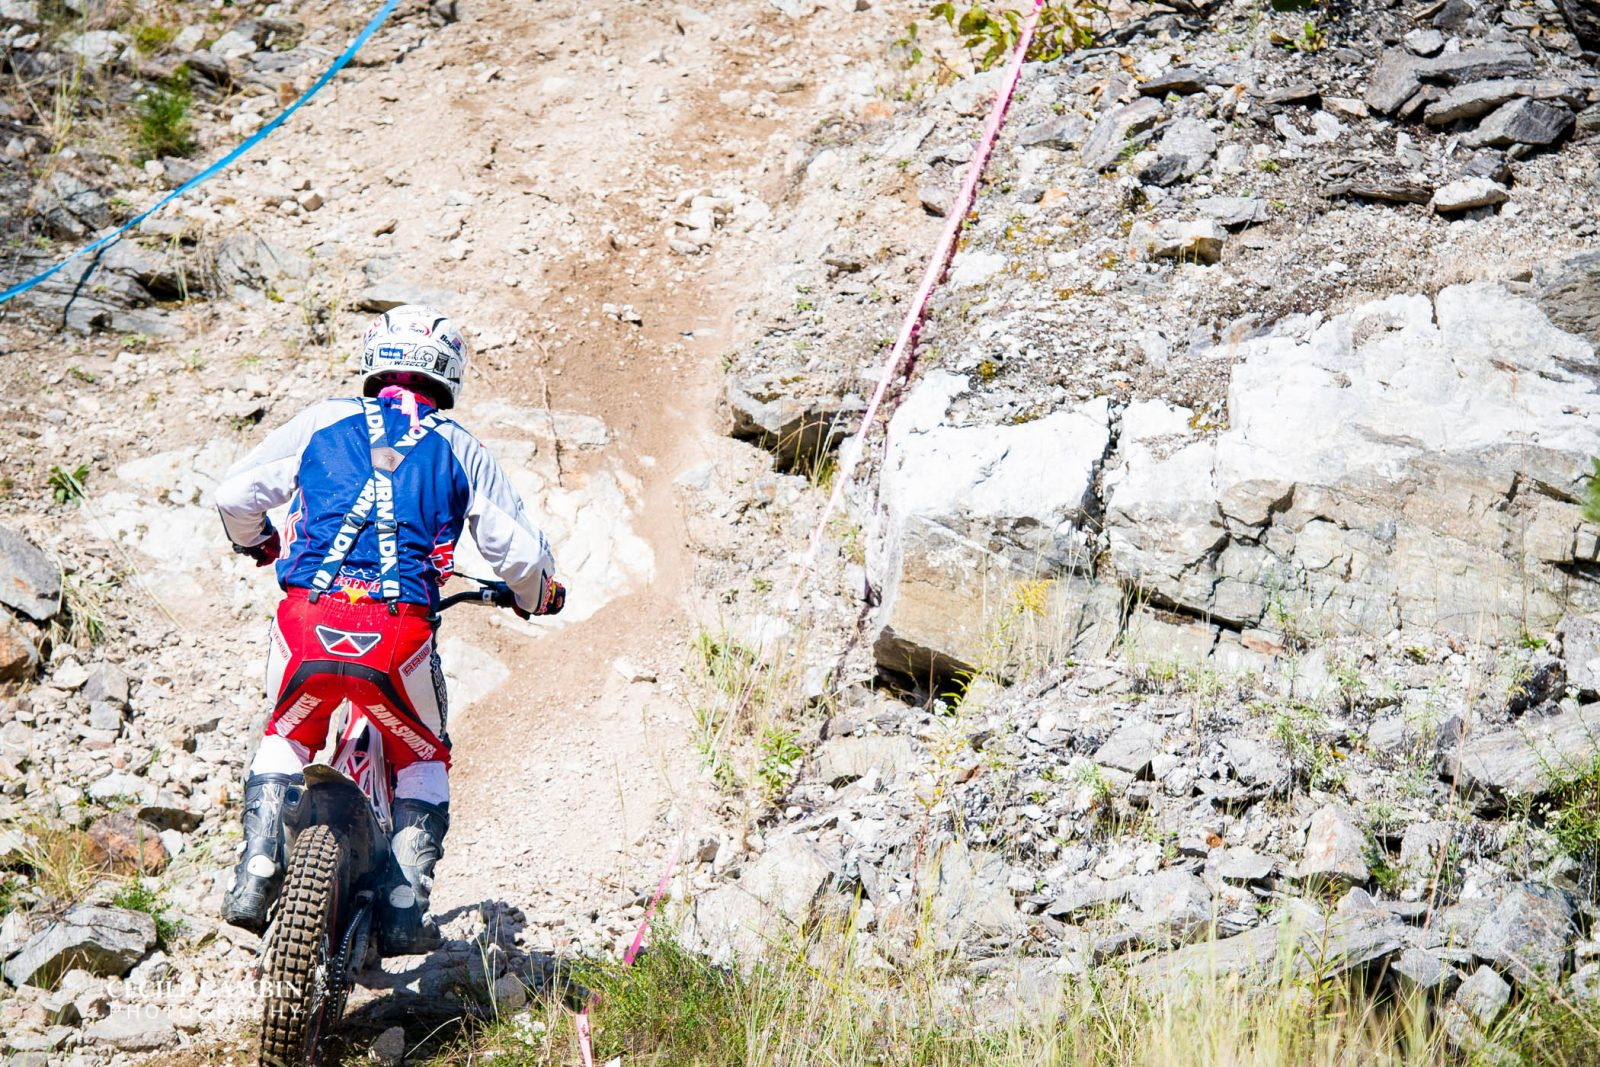 It was a hot, dry, dusty Sunday making the climbs that much more difficult as shale and other loose debris moved underneath the tires.